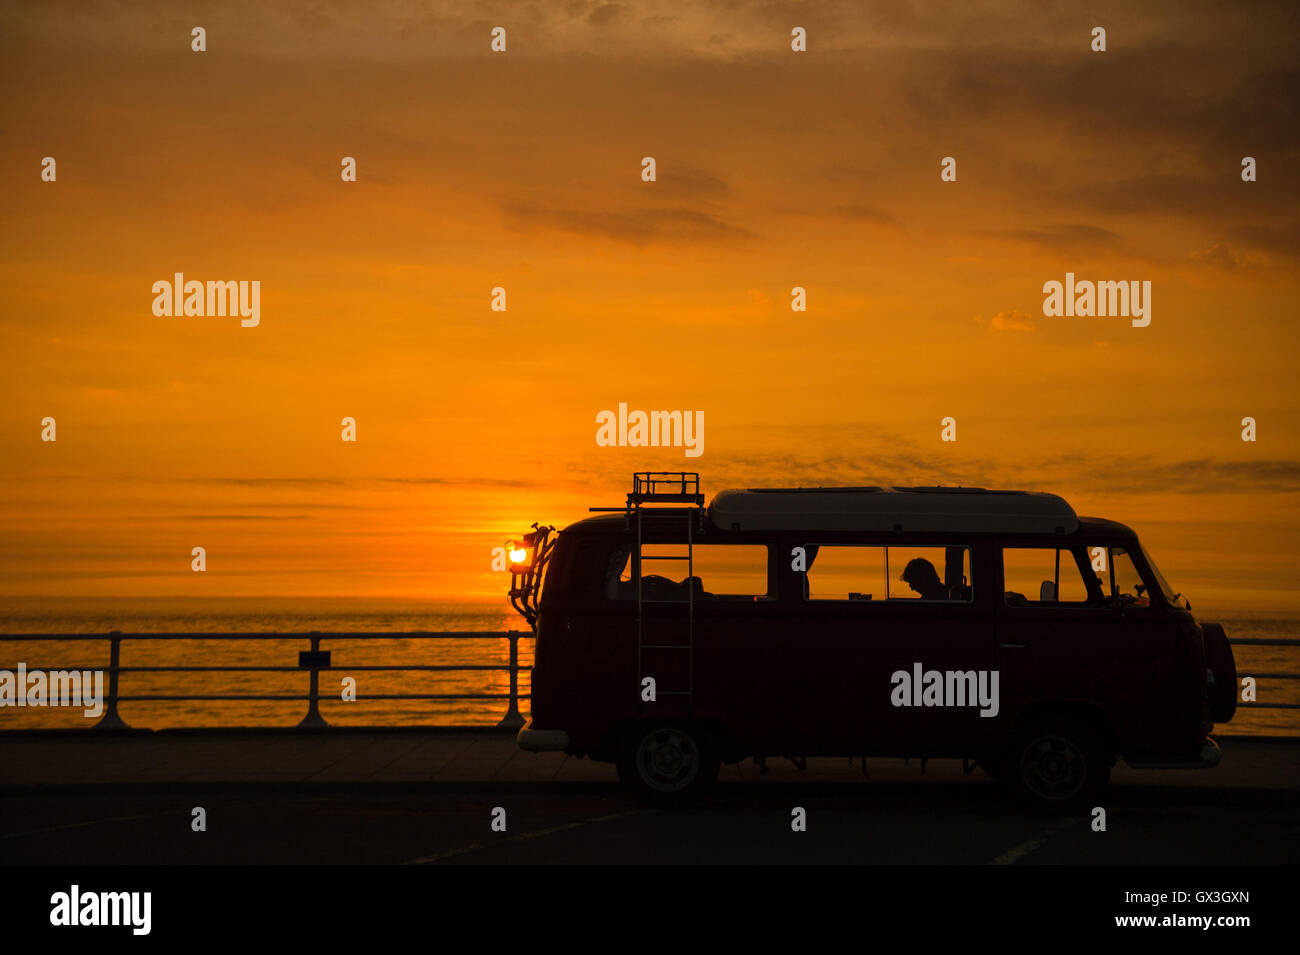 Aberystwyth Wales UK, Thursday 15 September 2016  UK weather: The classic iconic shape of a Volkswagen T2 camper Stock Photo